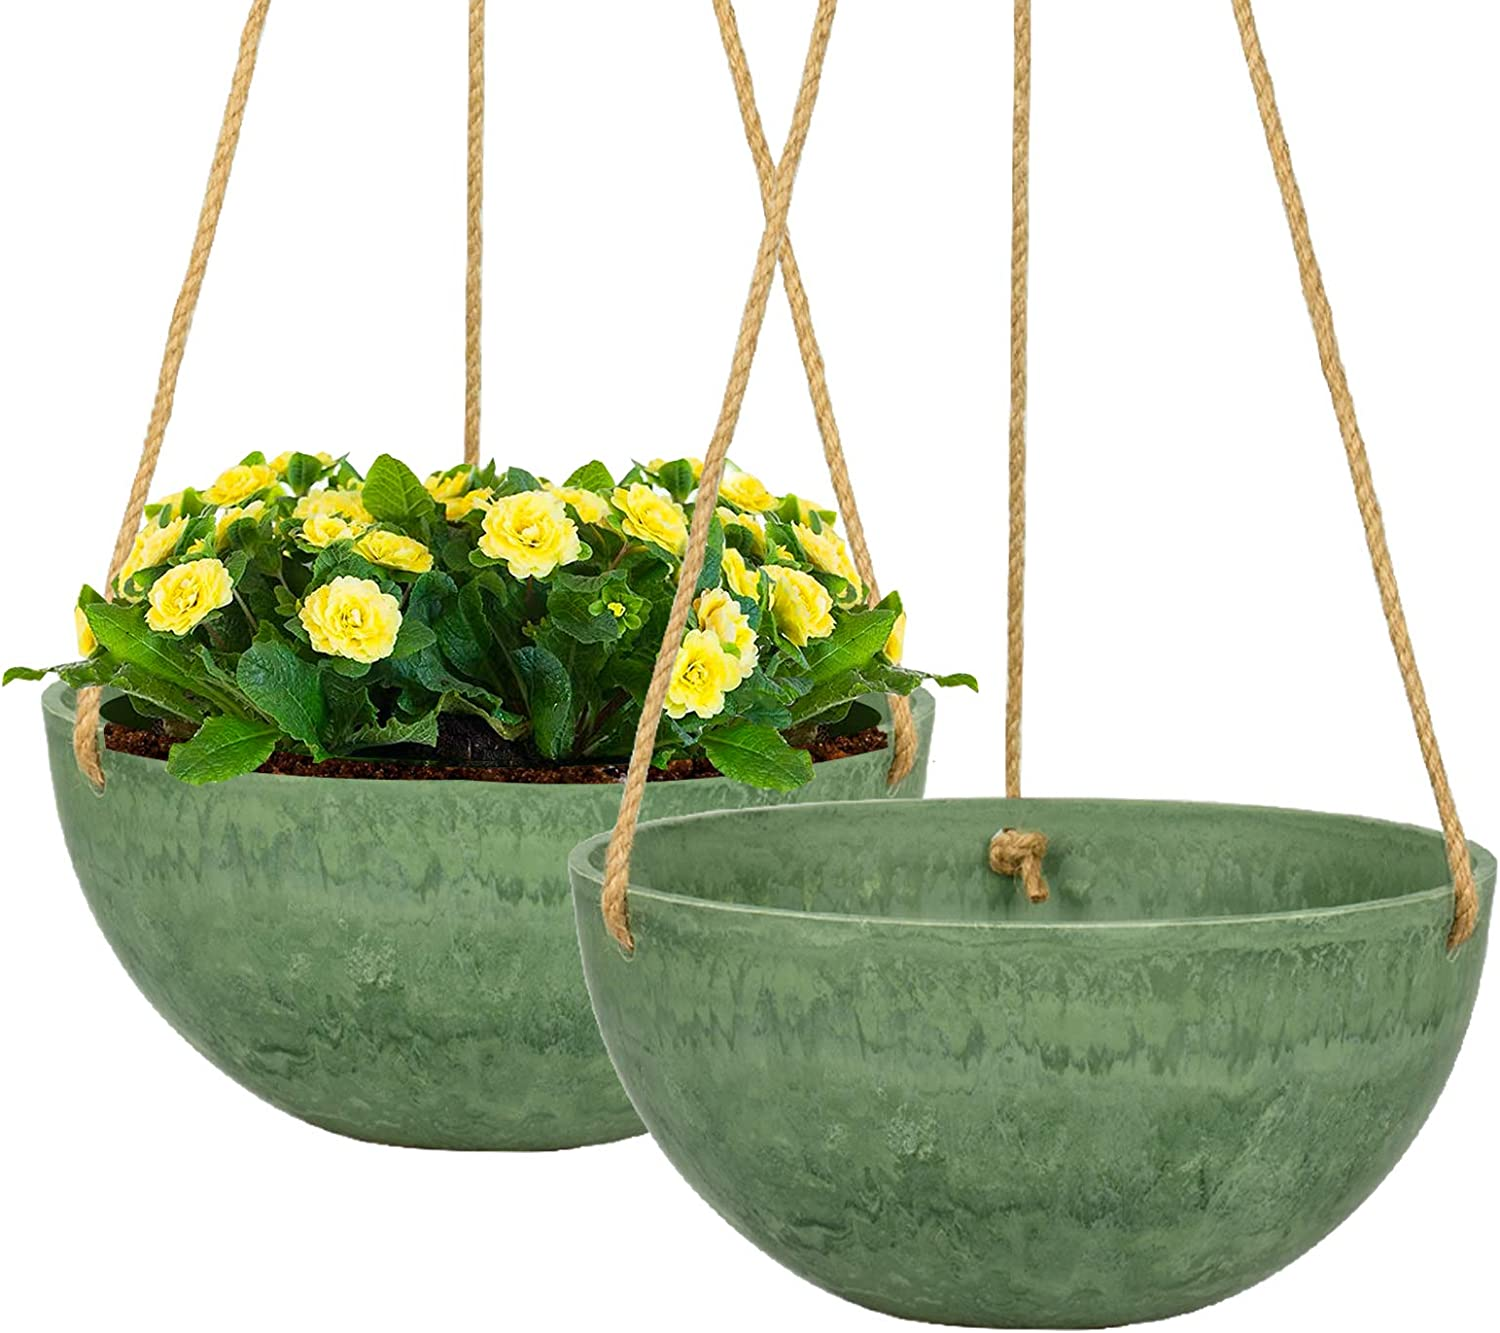 VICHOCCA Hanging Planter 10 Inch Flower Pot Hanging Basket Plant Holder with Marble Pattern for Indoor Outdoor Home Bedroom Balcony Garden Decor, 2 Pack, Emeral Green